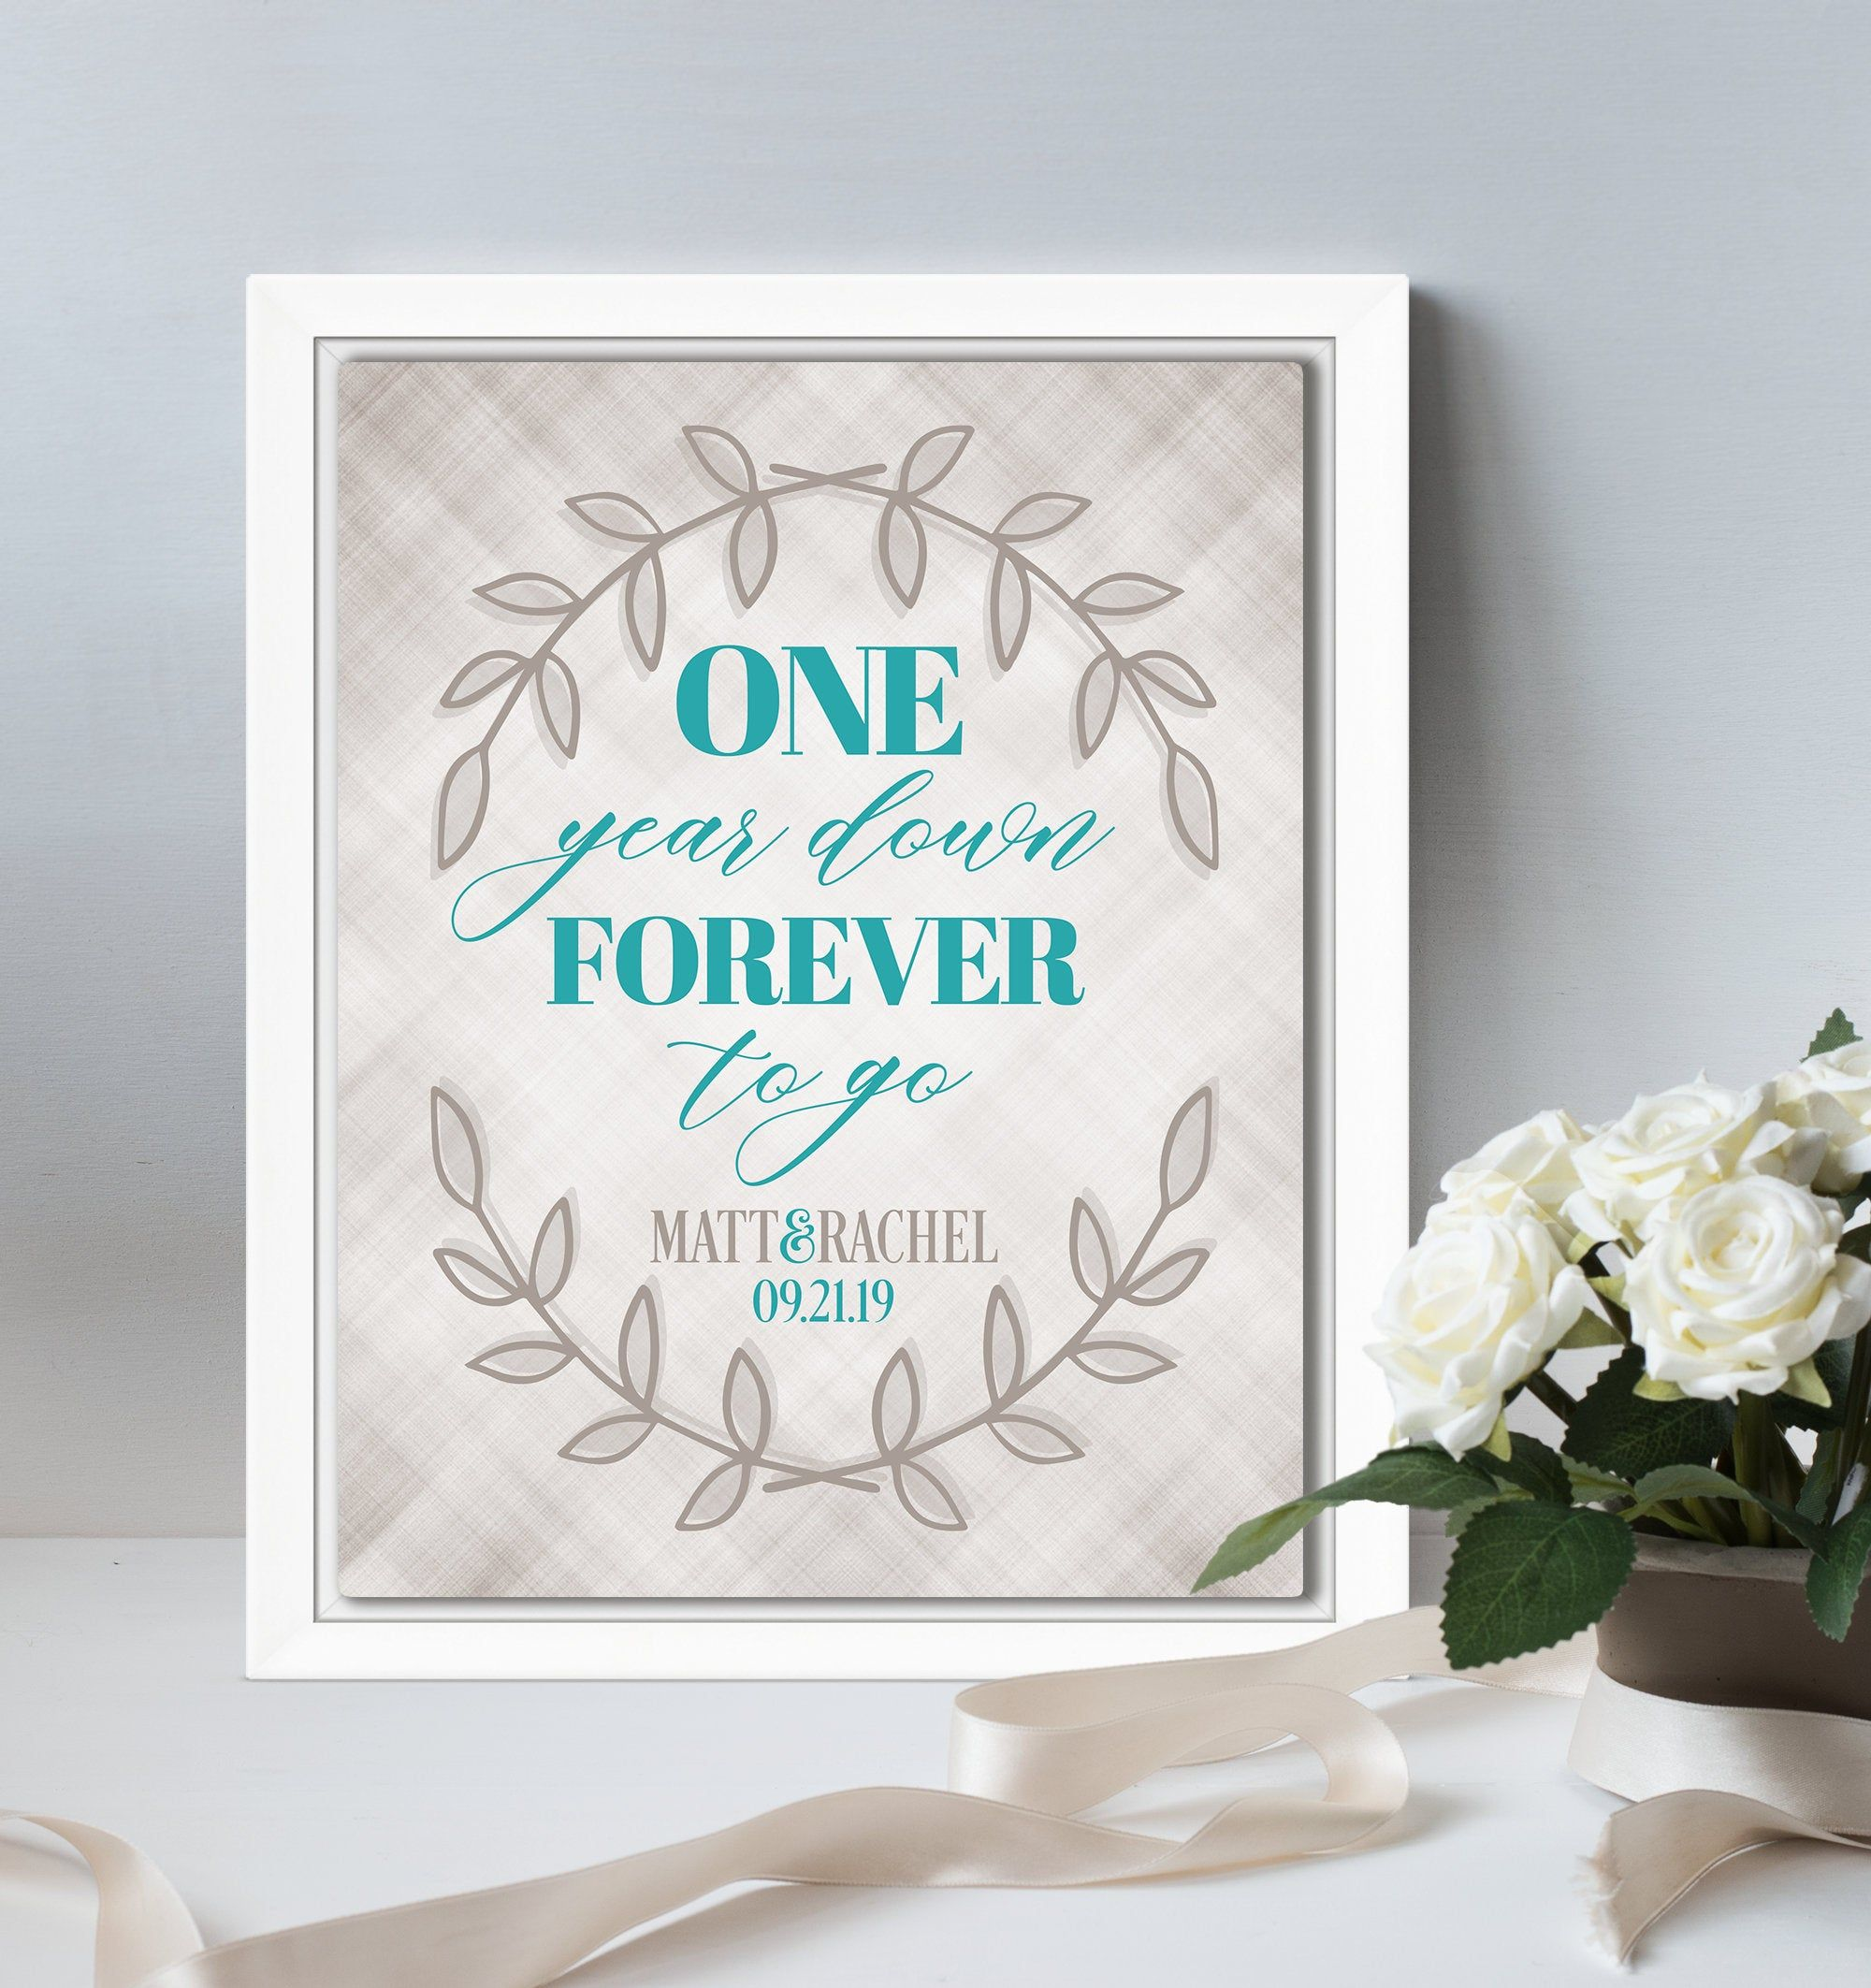 First Anniversary Together 1 Year Anniversary Gift For Boyfriend Girlfr Boyfriend Anniversary Gifts Anniversary Quotes For Boyfriend Dating Anniversary Gifts